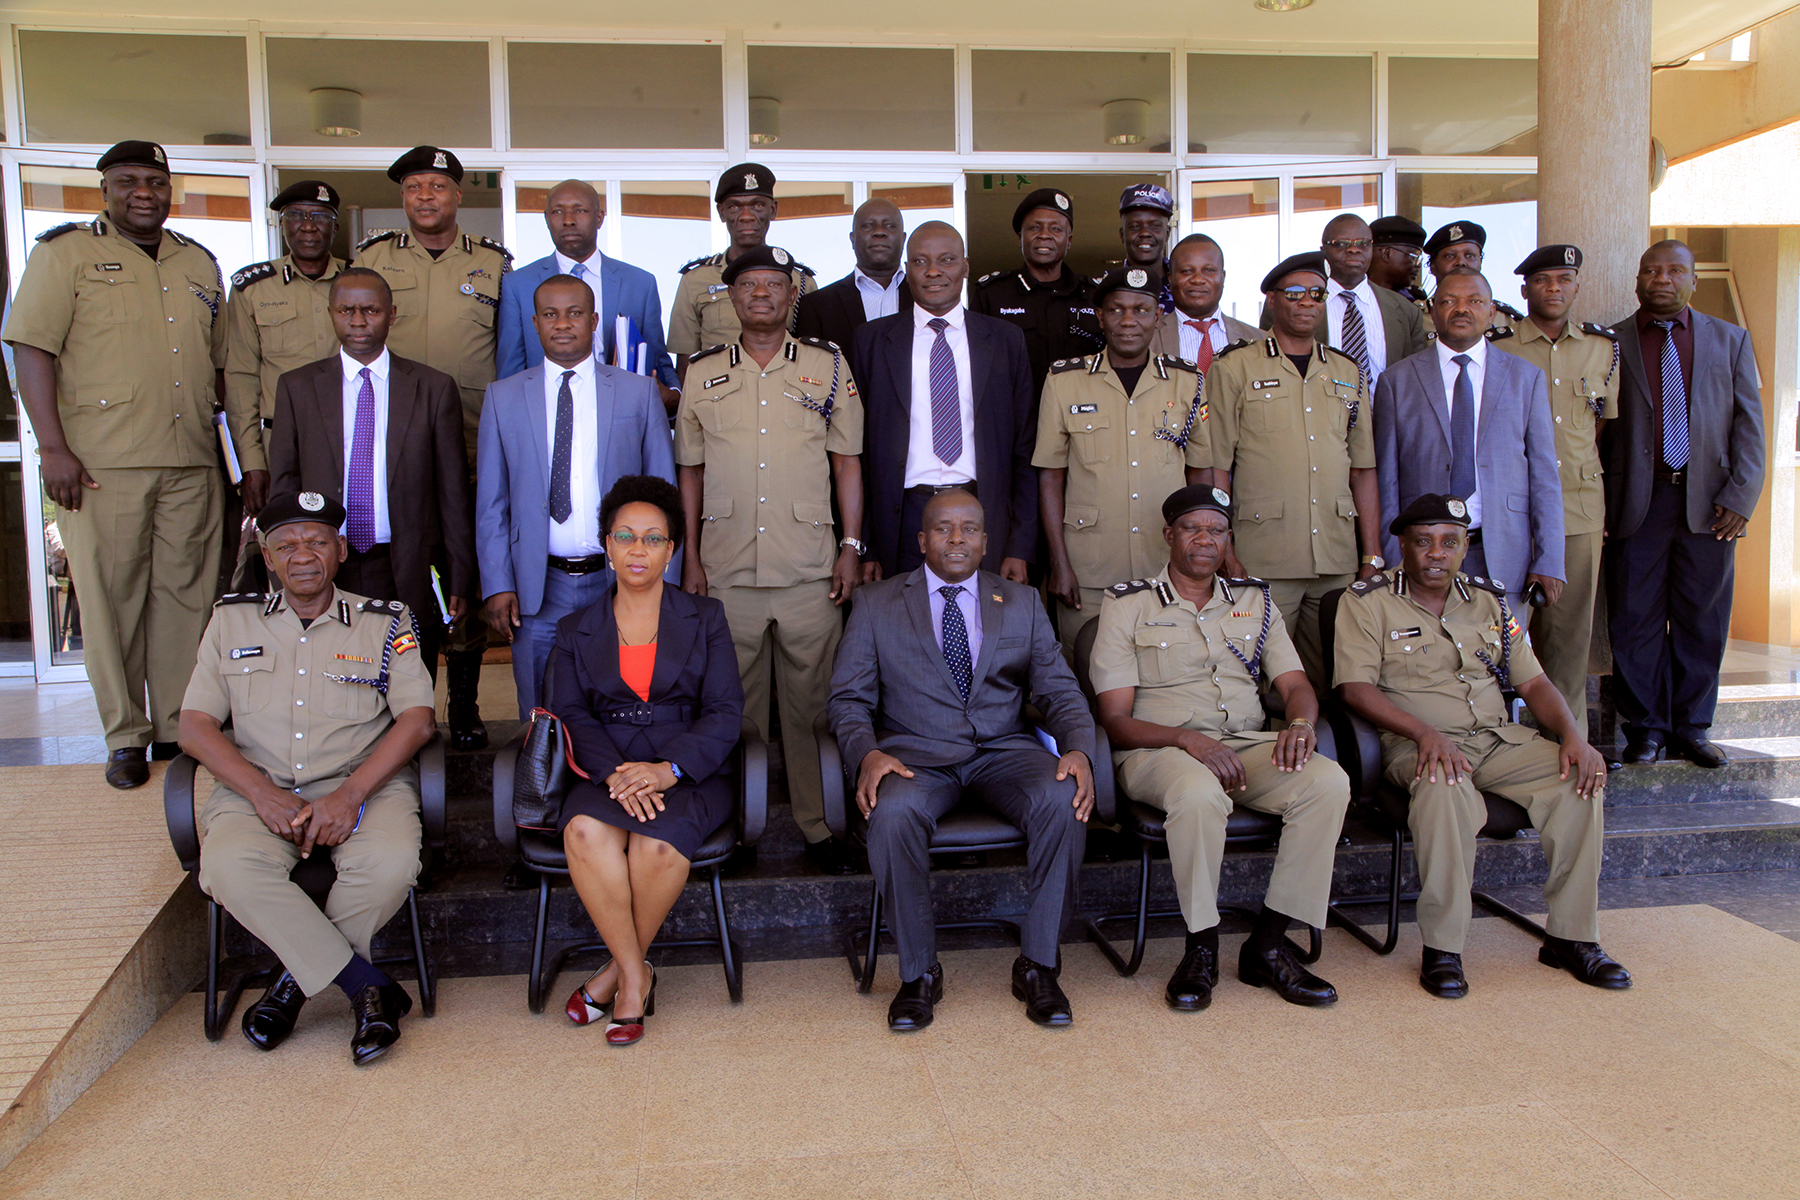 MINISTRY OF PUBLIC DELEGATION LED BY HON. MINISTER OF STATE FOR PUBLIC SERVICE DAVID KARUBANGA AND PERMANENT SECRETARY CATHERINE BITARAKWATE MUSINGWIIRE AND UGANDA POLICE OFFICERS- DIRECTORS AND COMMISSIONERS DURING THE DECENTRALIZATION OF PENSION GRATUITY MANAGEMENT AND PAYMENT PROCESSES AT NA GURU POLICE HEADQUARTERS ON 27TH FEBRUARY 2019